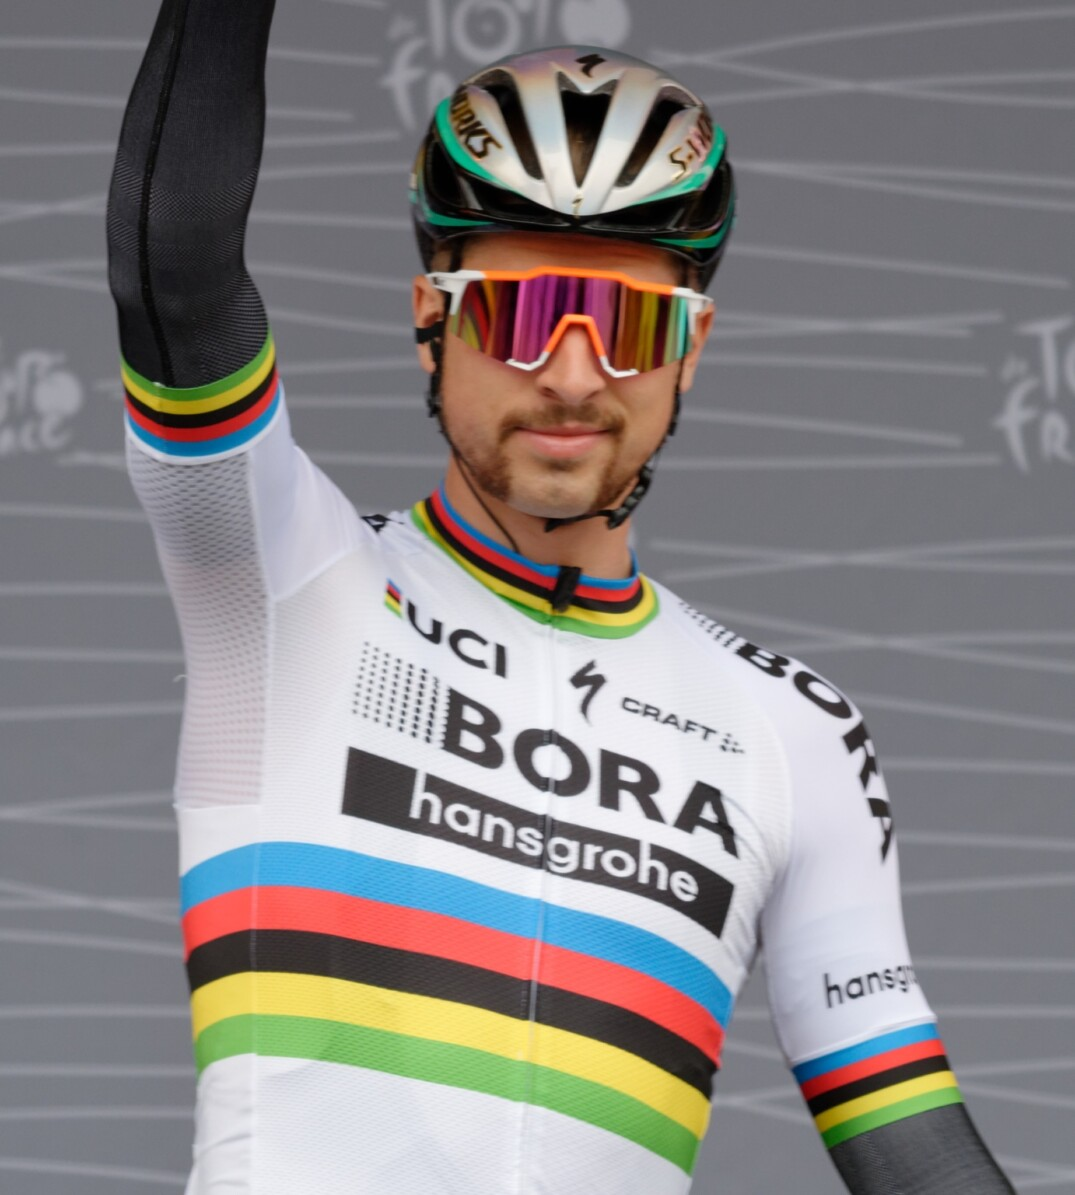 Peter Sagan lors du Tour de France 2017